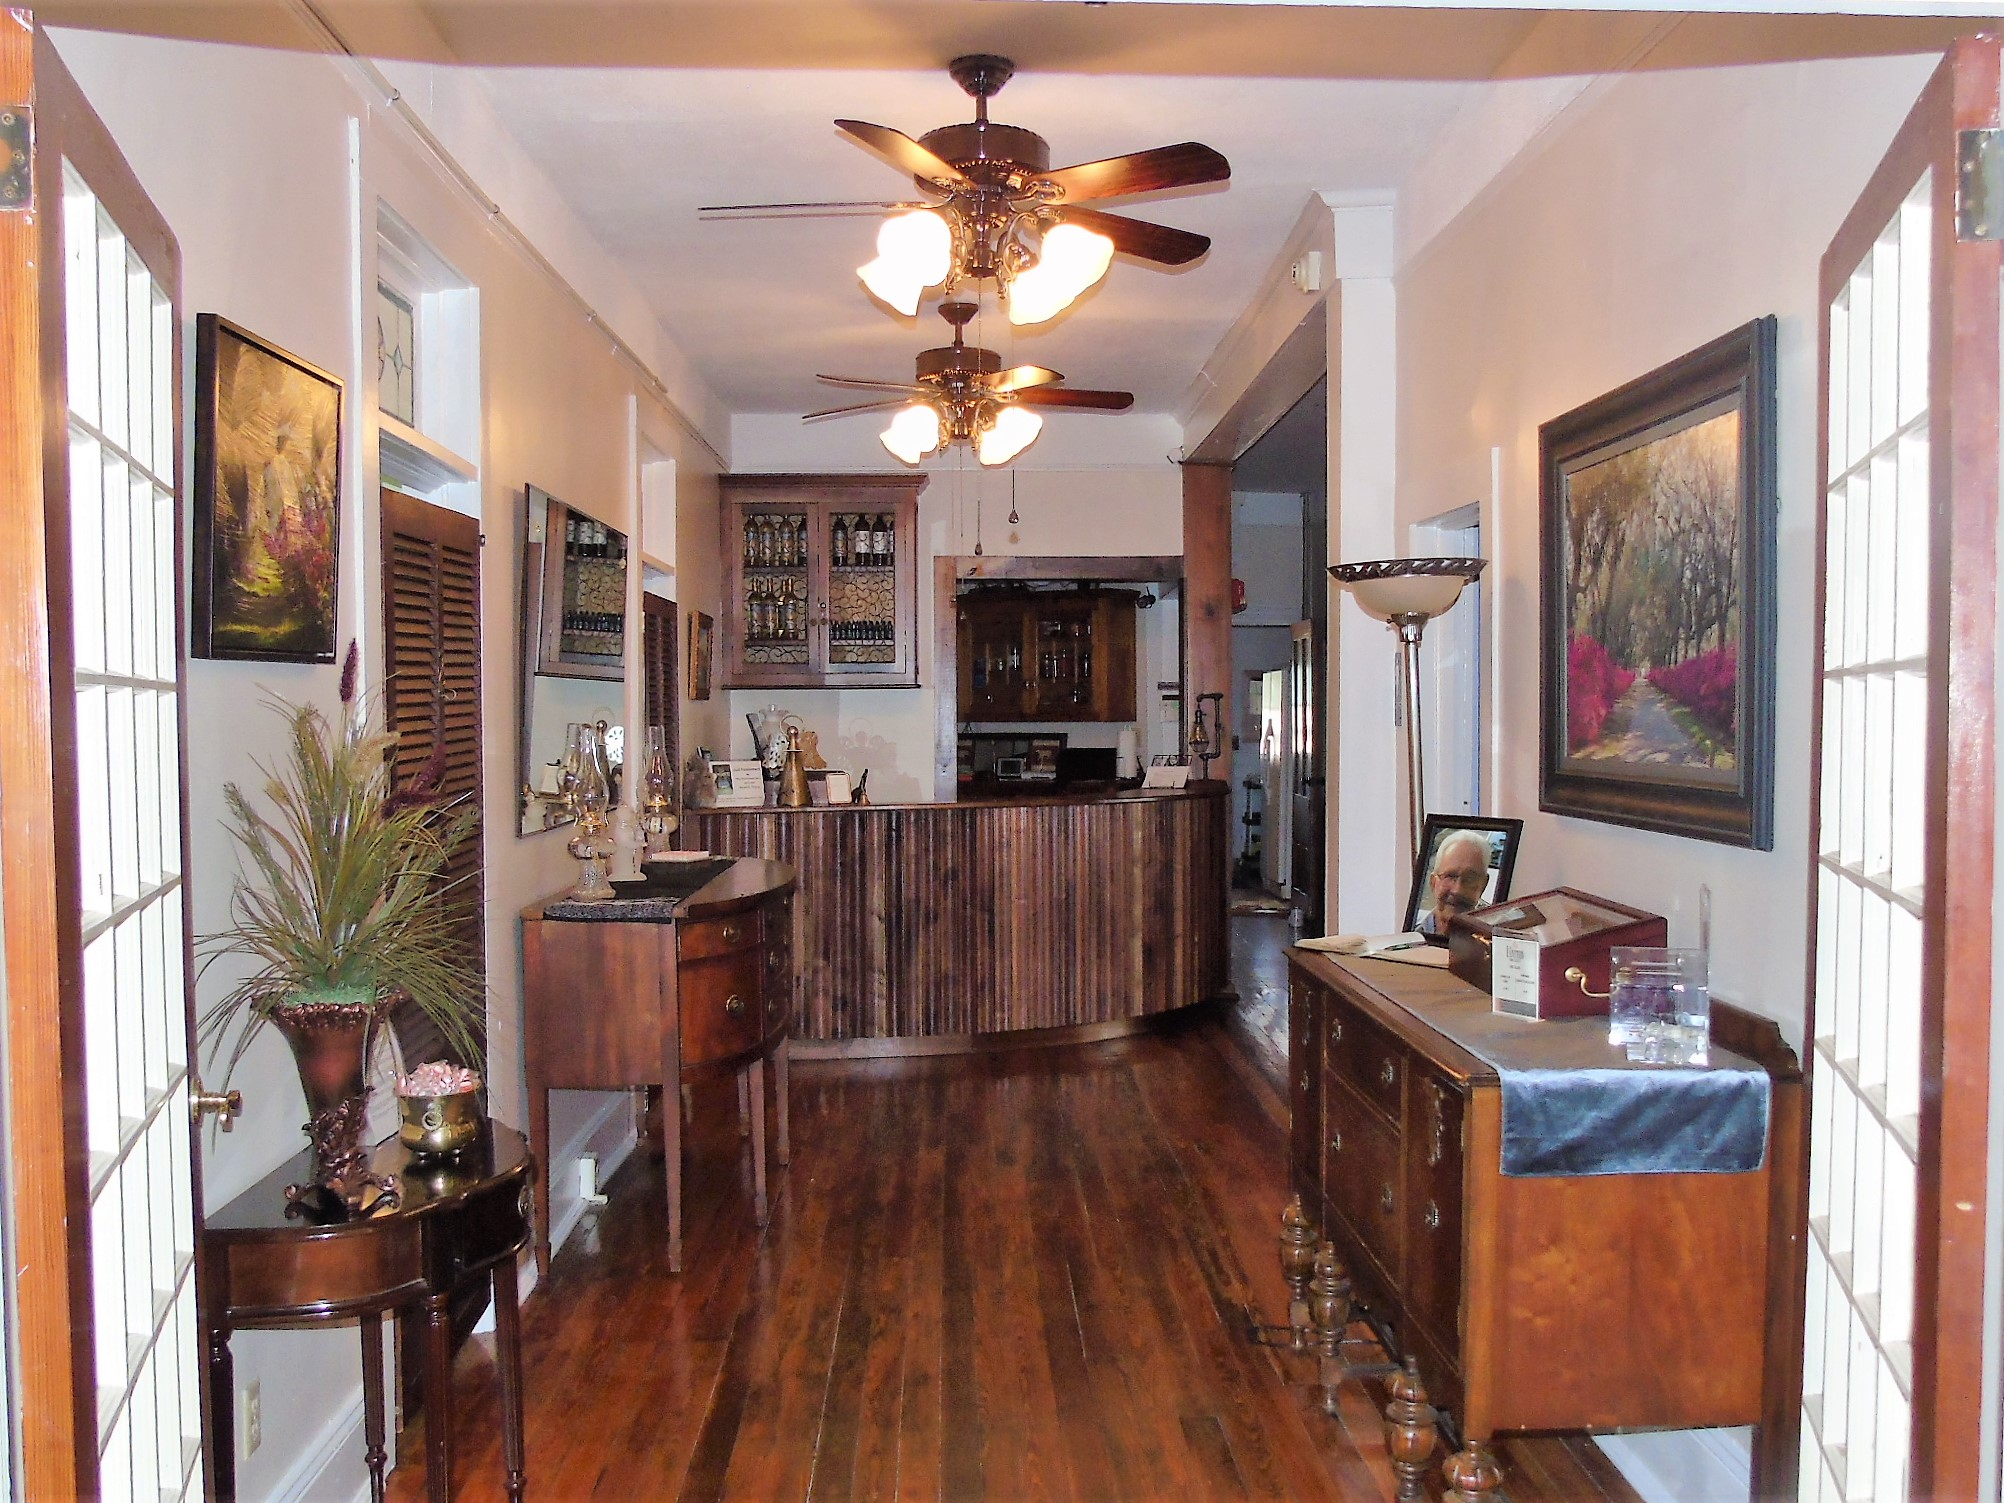 The Charleston Inn's Check-in Space with Finely Crafted Solid Walnut Inn Keeper's Counter